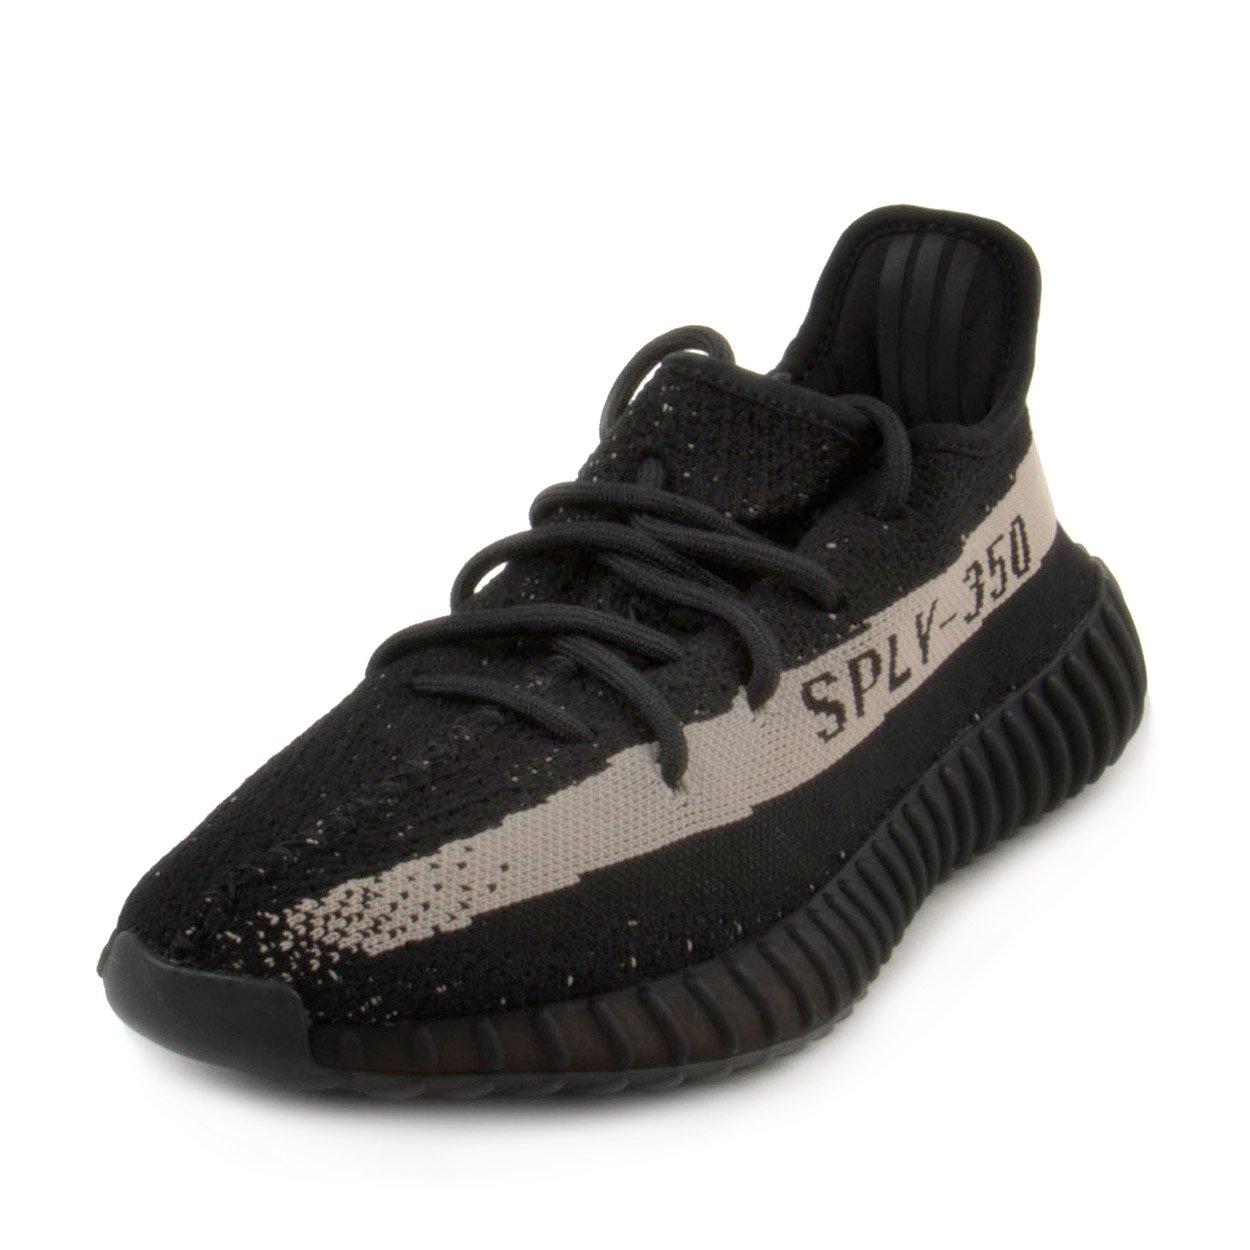 350 v2 BY1605 BY9611 BY9612 | Cheap Yeezys